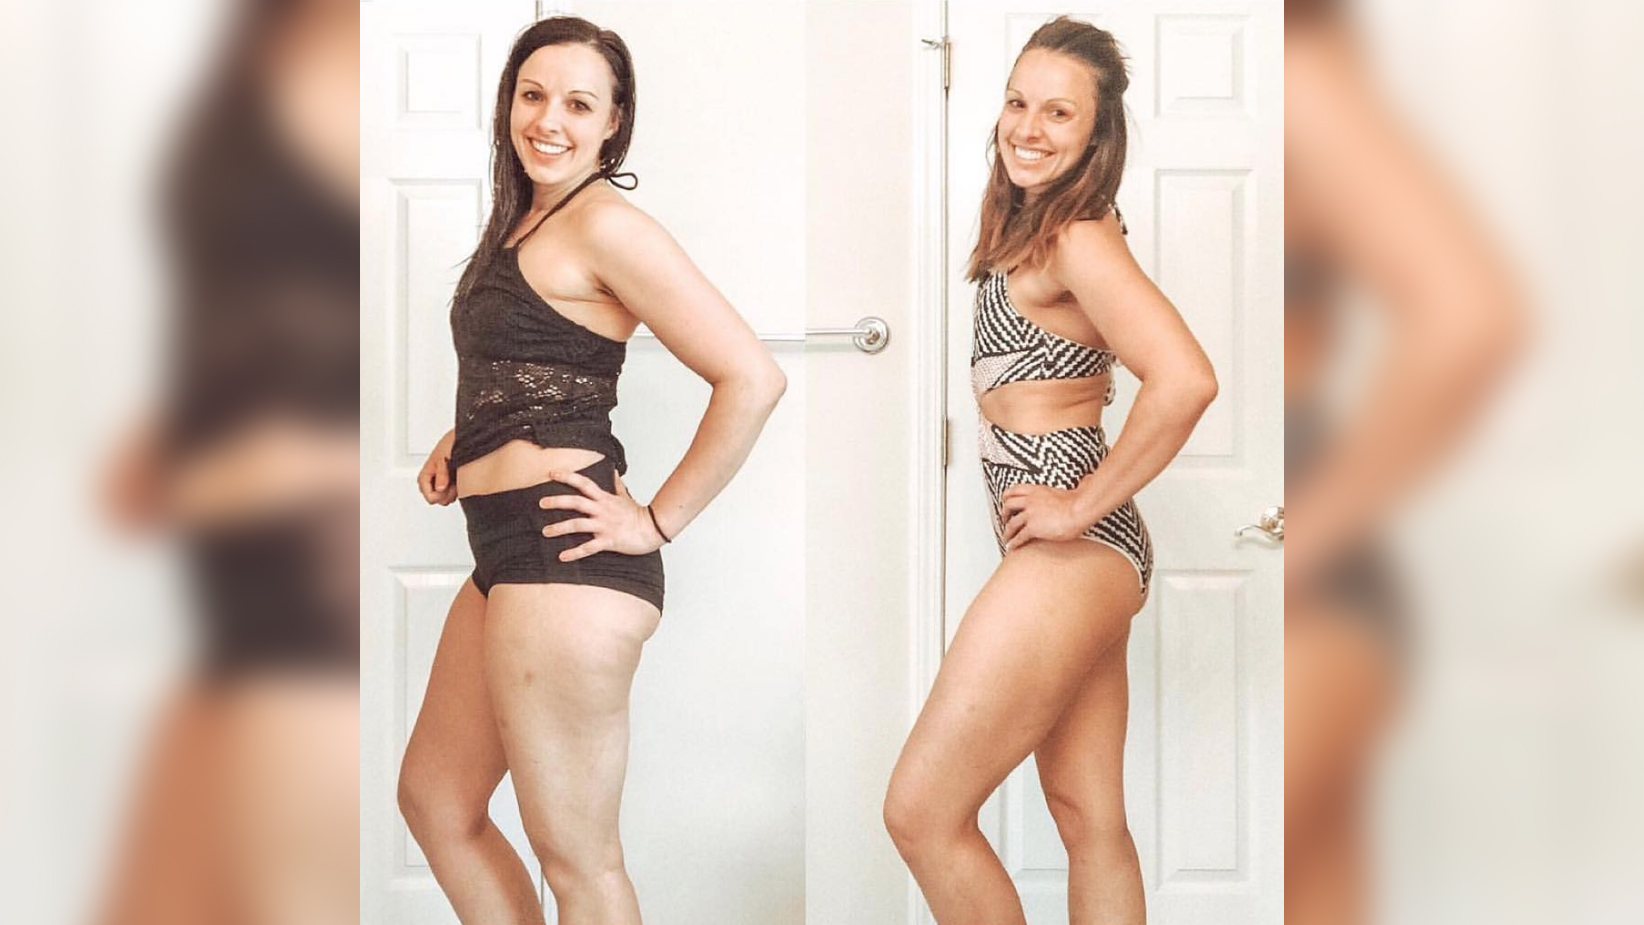 transformation before-after ashley sneddon woman health fitness body